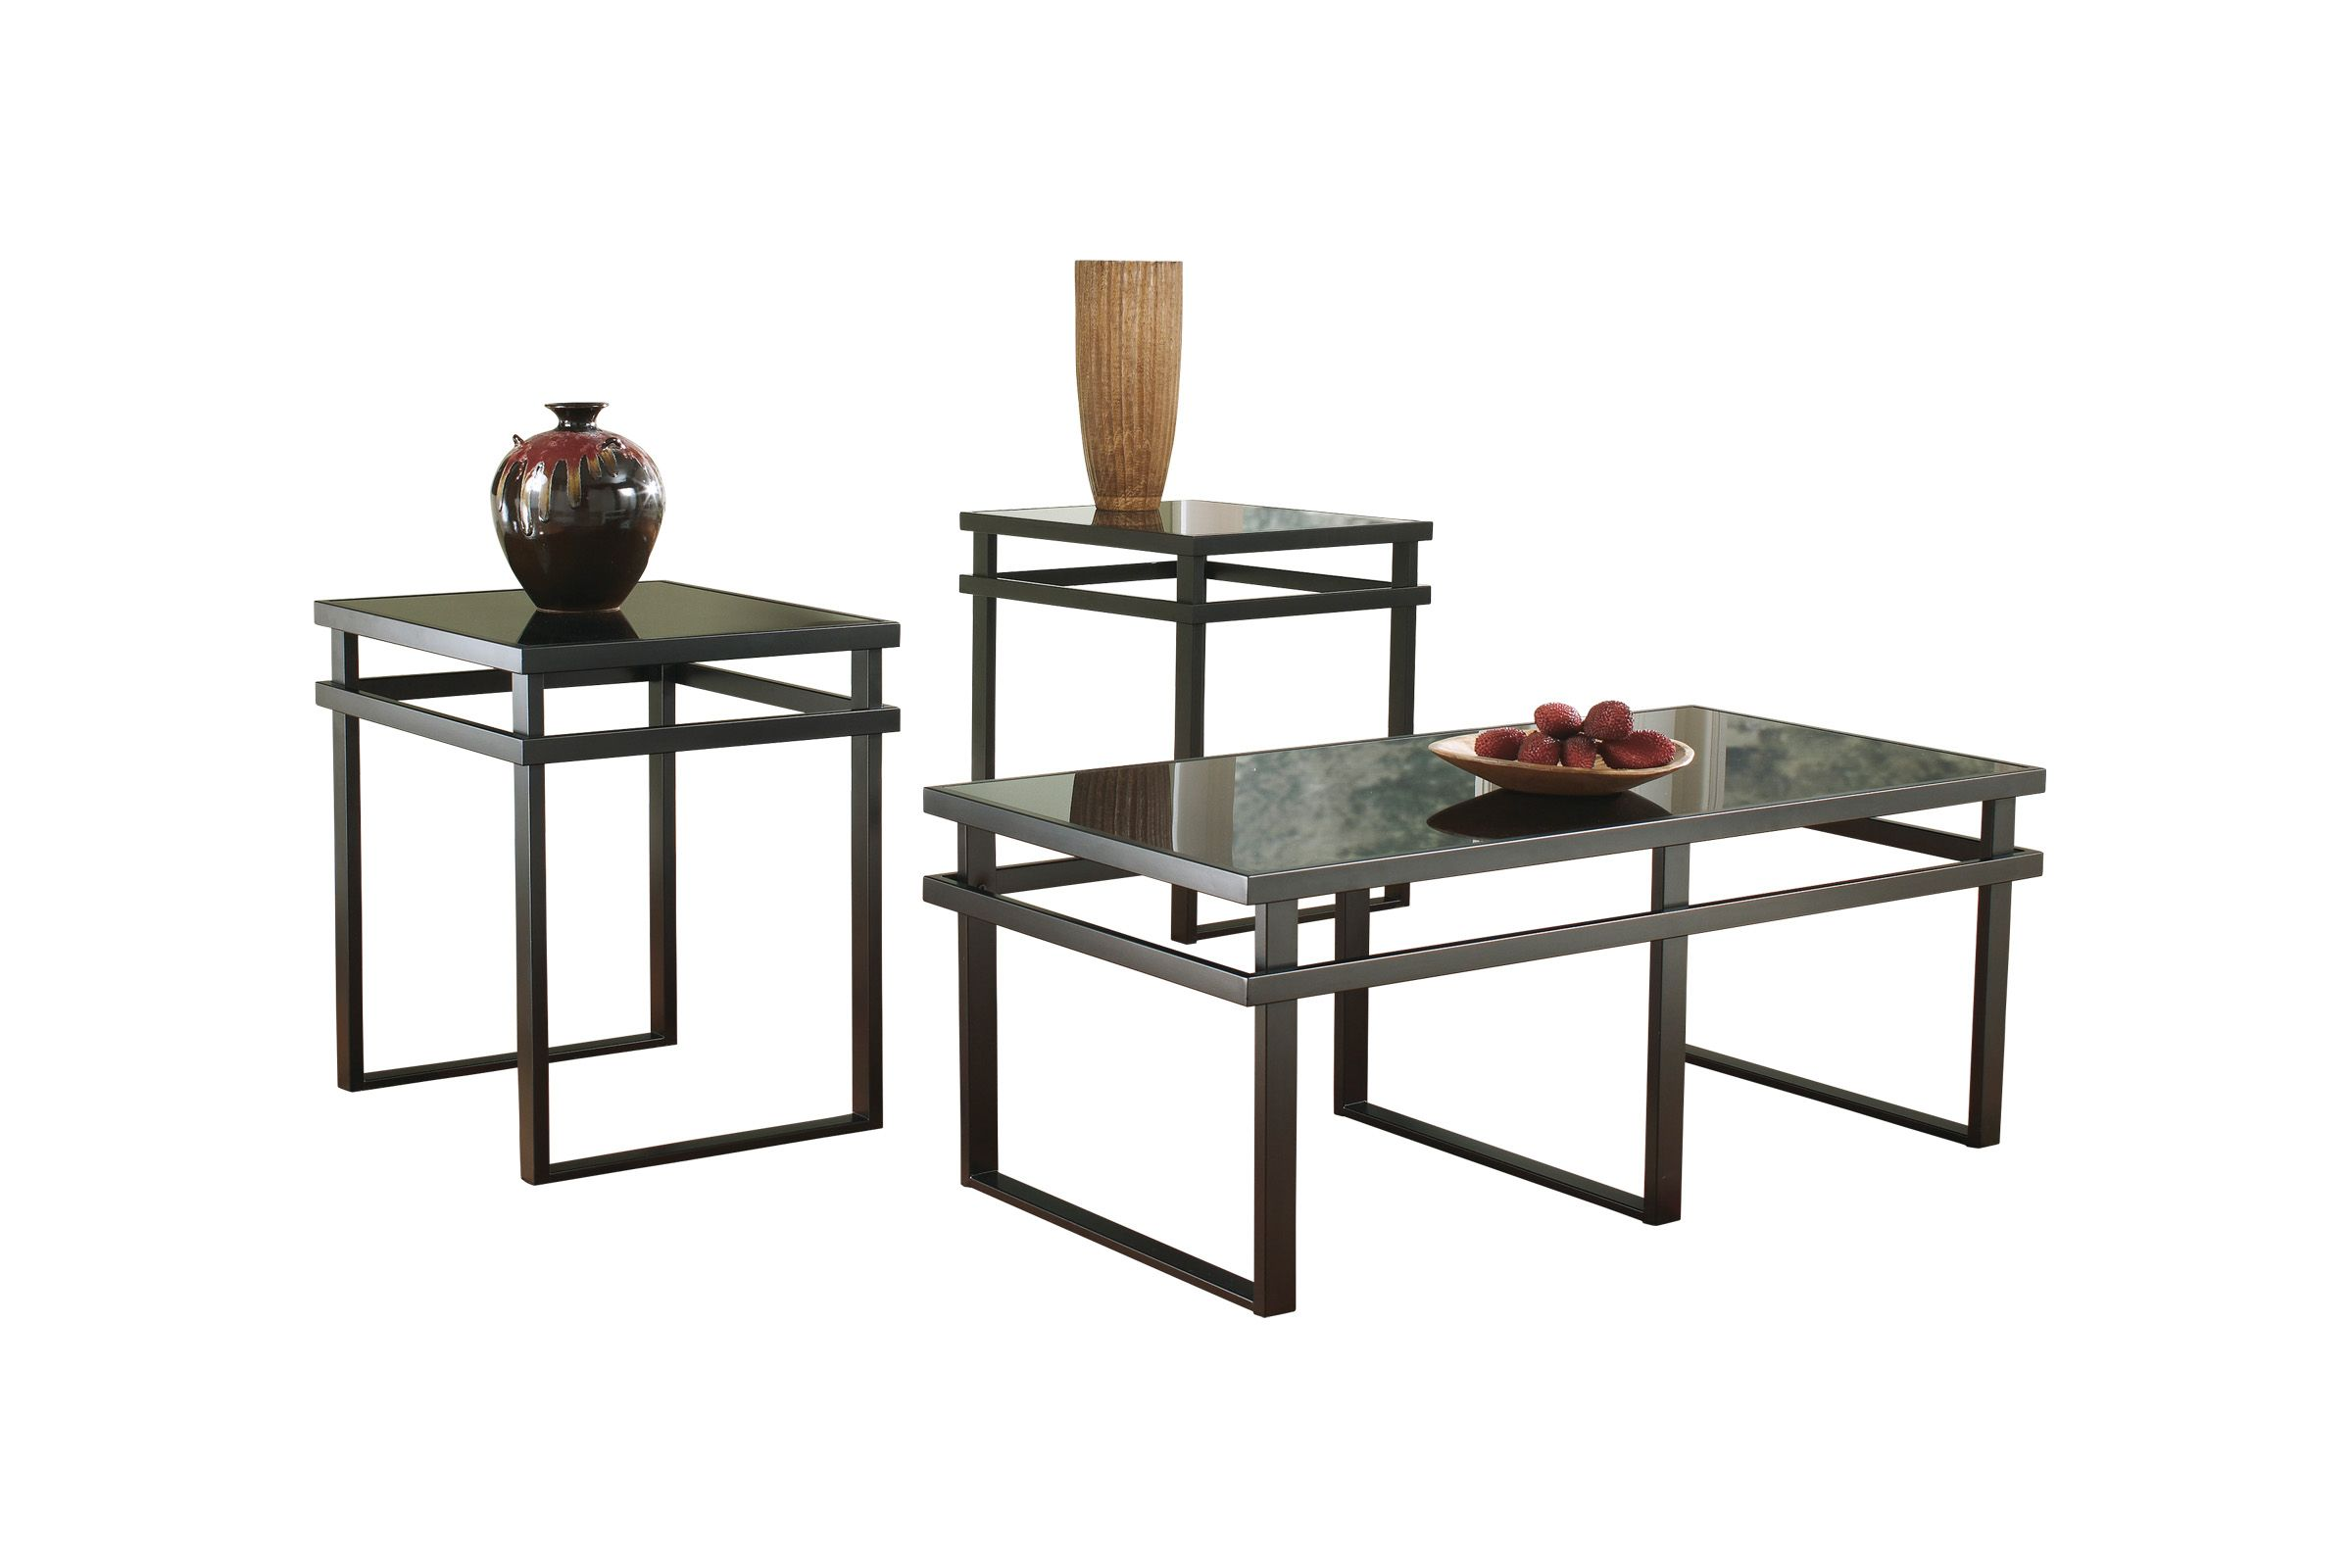 Laney Occasional Table Set By Ashley At Gardner White In 2021 3 Piece Coffee Table Set Coffee Table Setting Coffee Table [ 1600 x 2400 Pixel ]